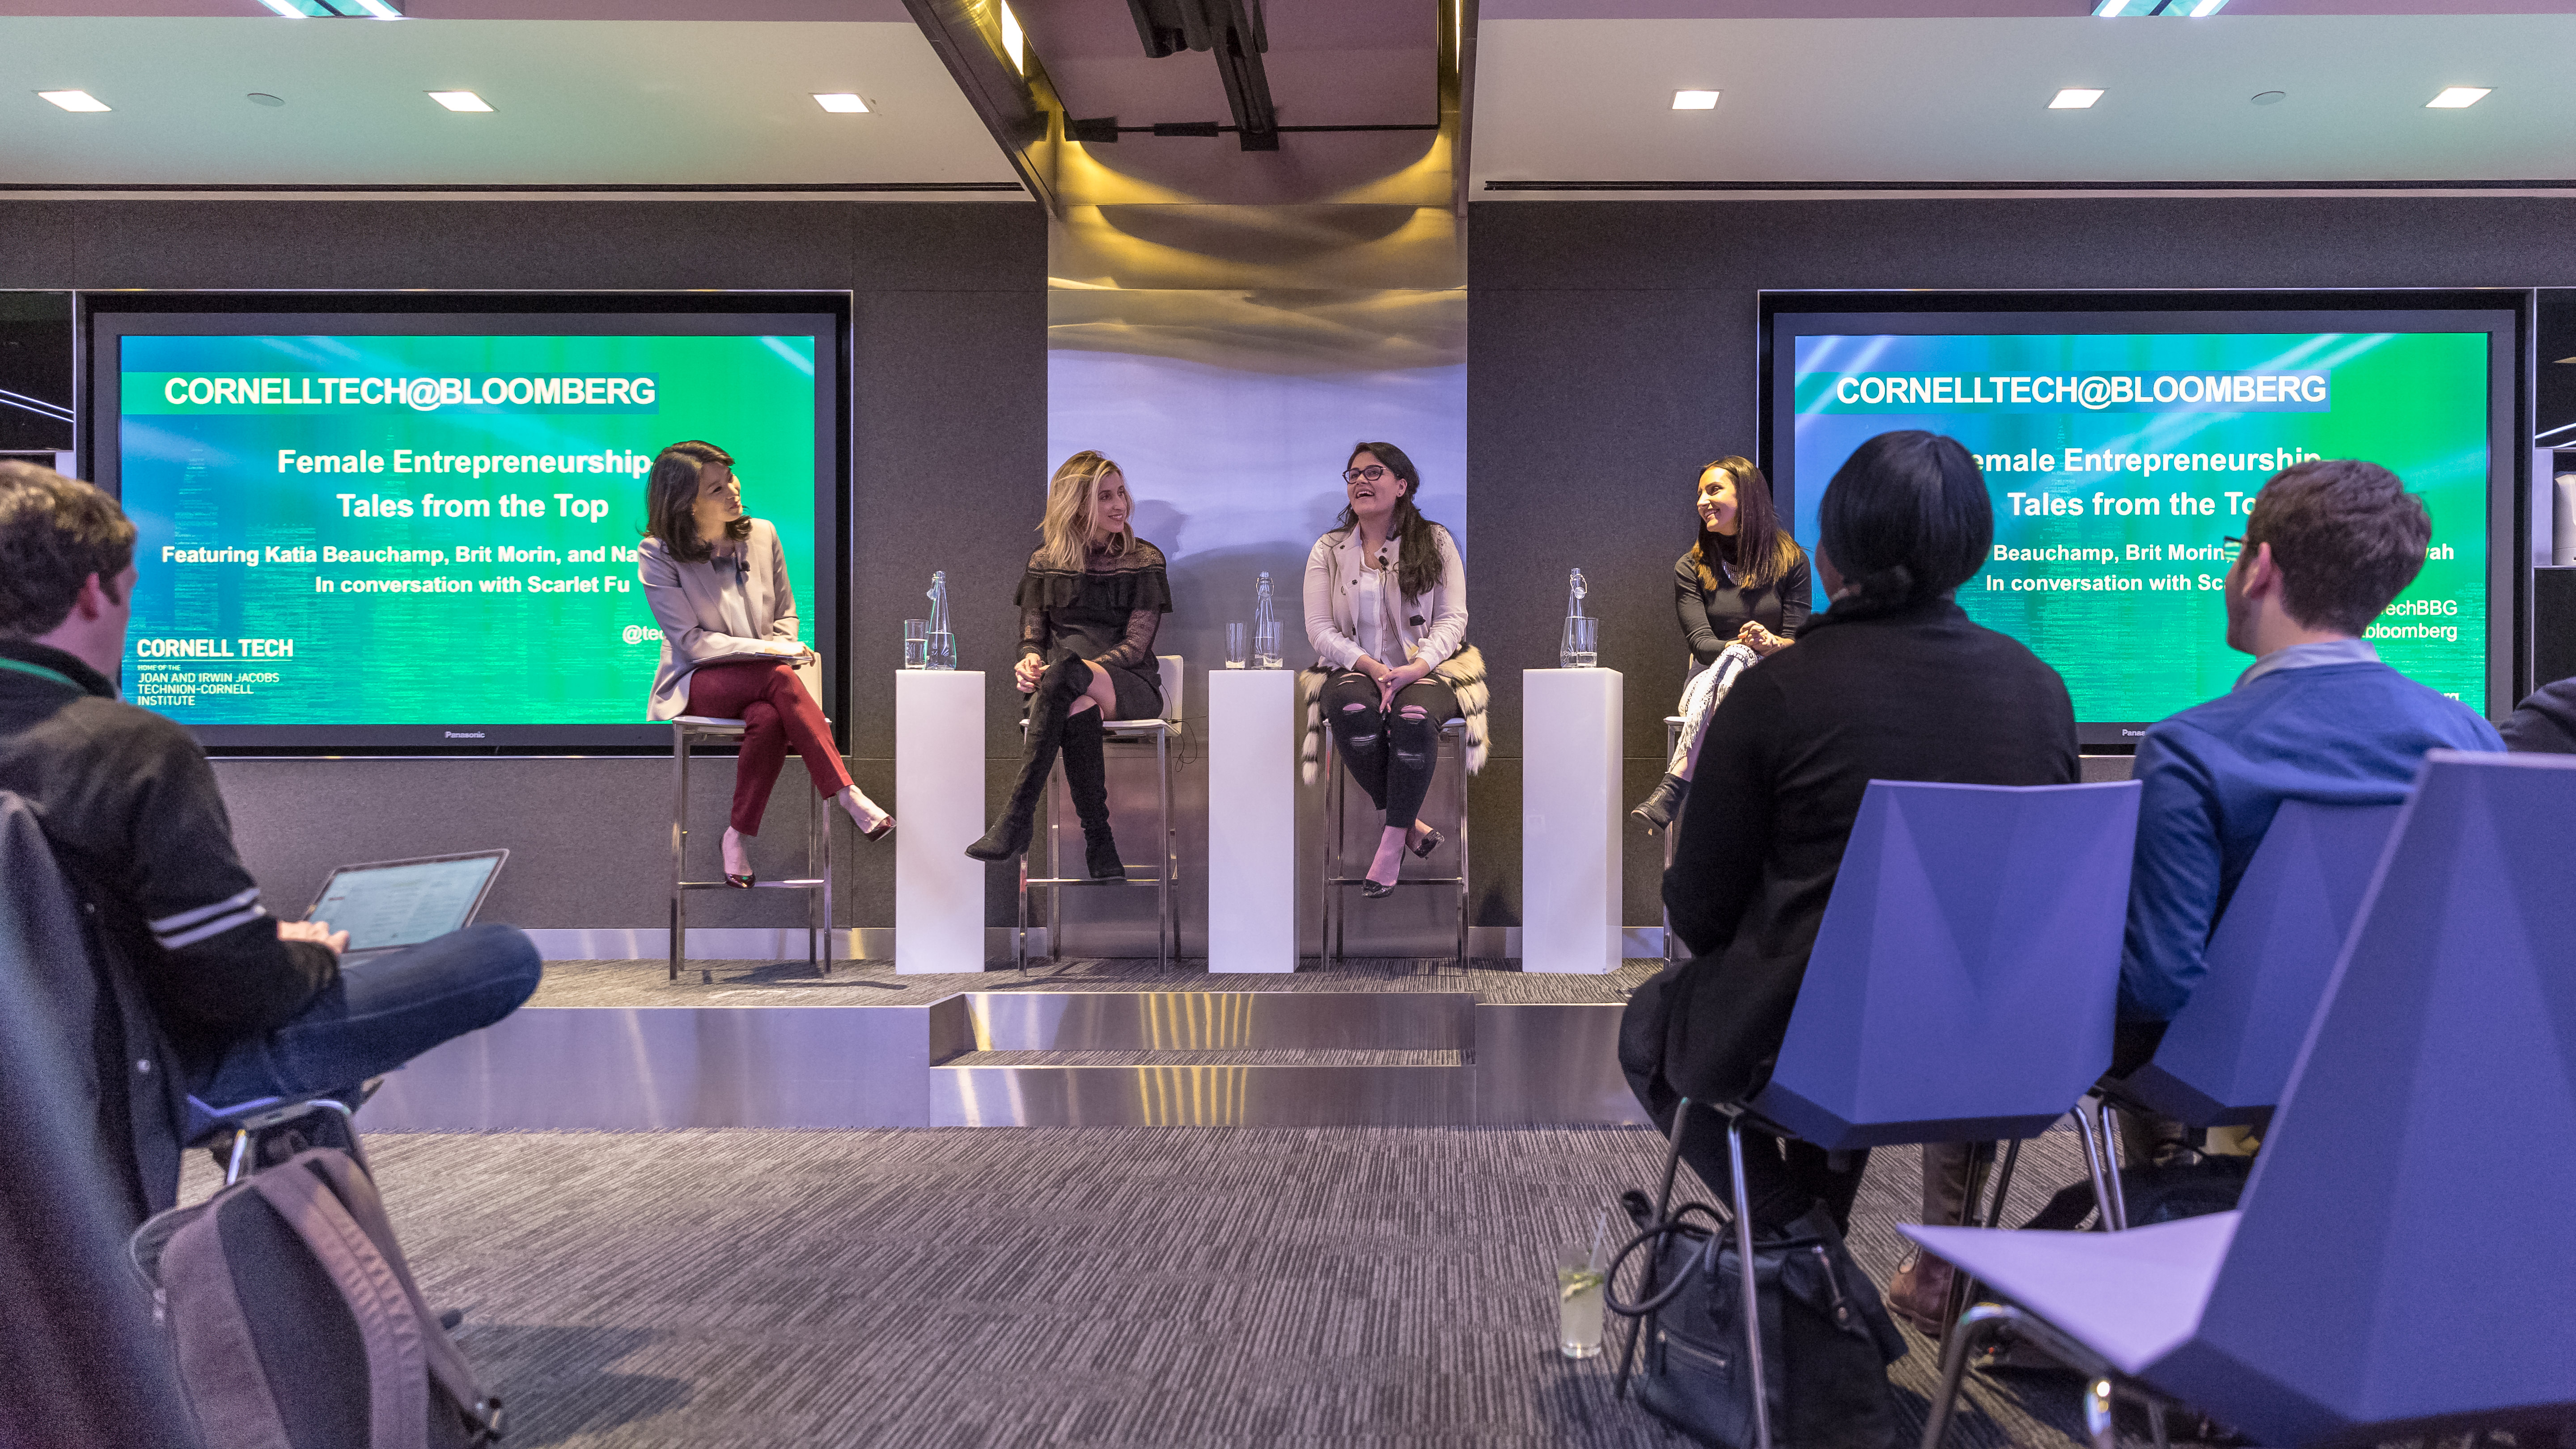 On February 7, 2017 CornellTech@Bloomberg series, featured a panel of three female entrepreneurs: Katia Beauchamp, co-founder and CEO of Birchbox, Brit Morin, co-founder and CEO of Brit + Co, and Nadia Boujarwah, co-founder and CEO of Dia&Co. Bloomberg News Anchor Scarlet Fu moderated the panel at Bloomberg LP's Global Headquarters in New York. Credit: Lori Hoffman/Bloomberg